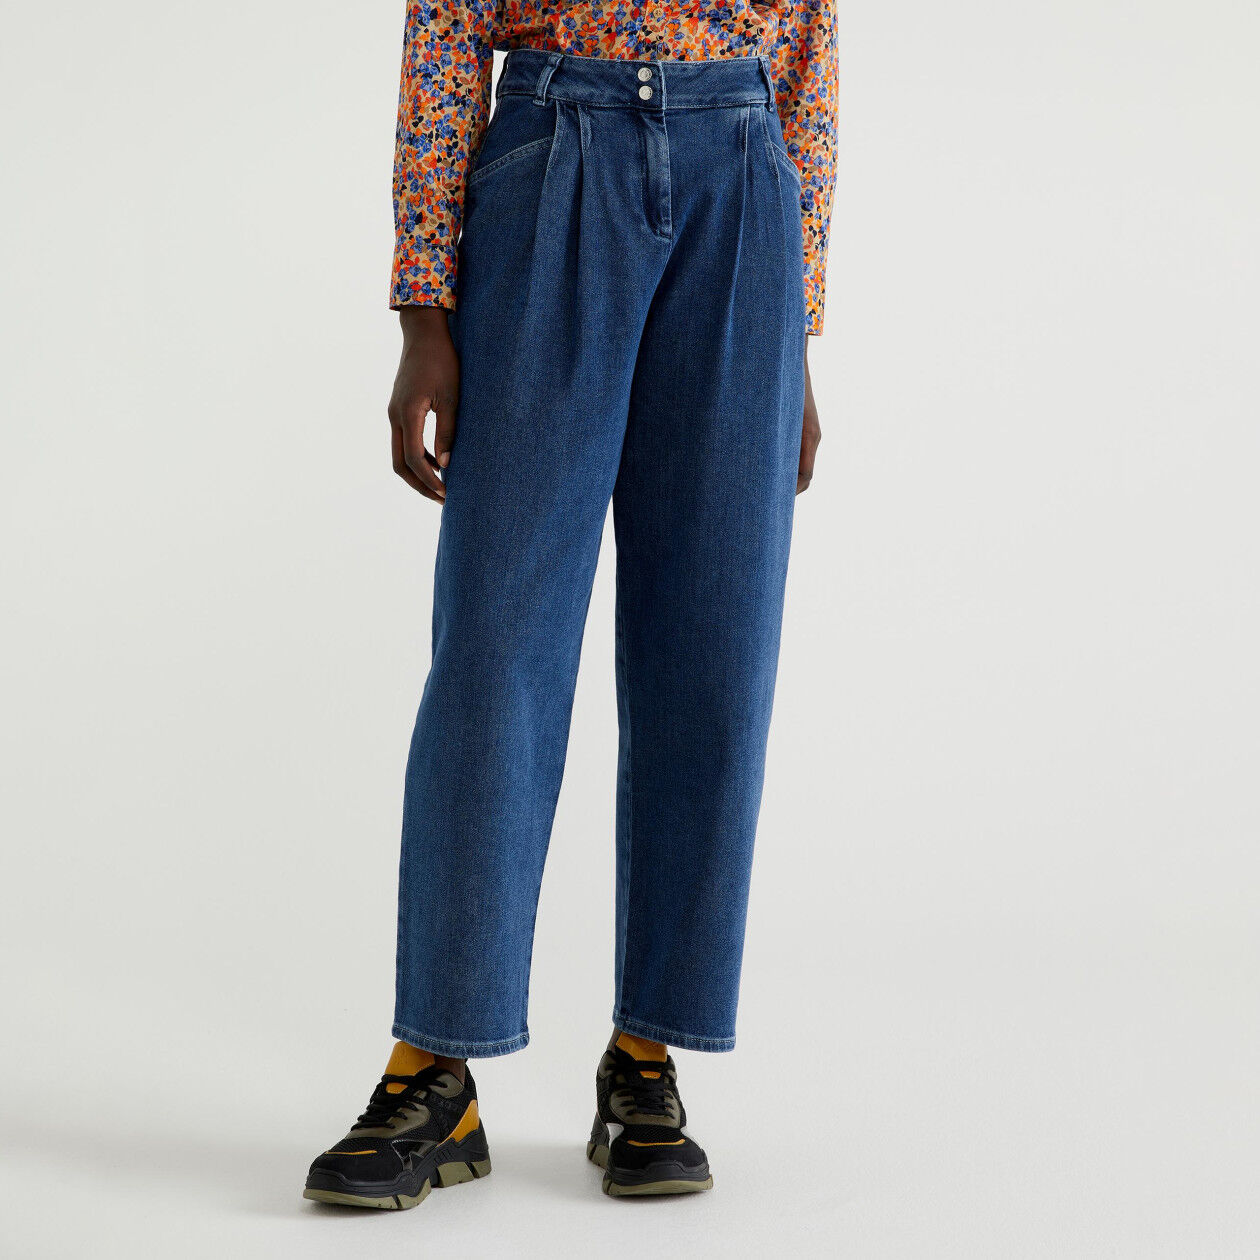 Pantalon ample en denim